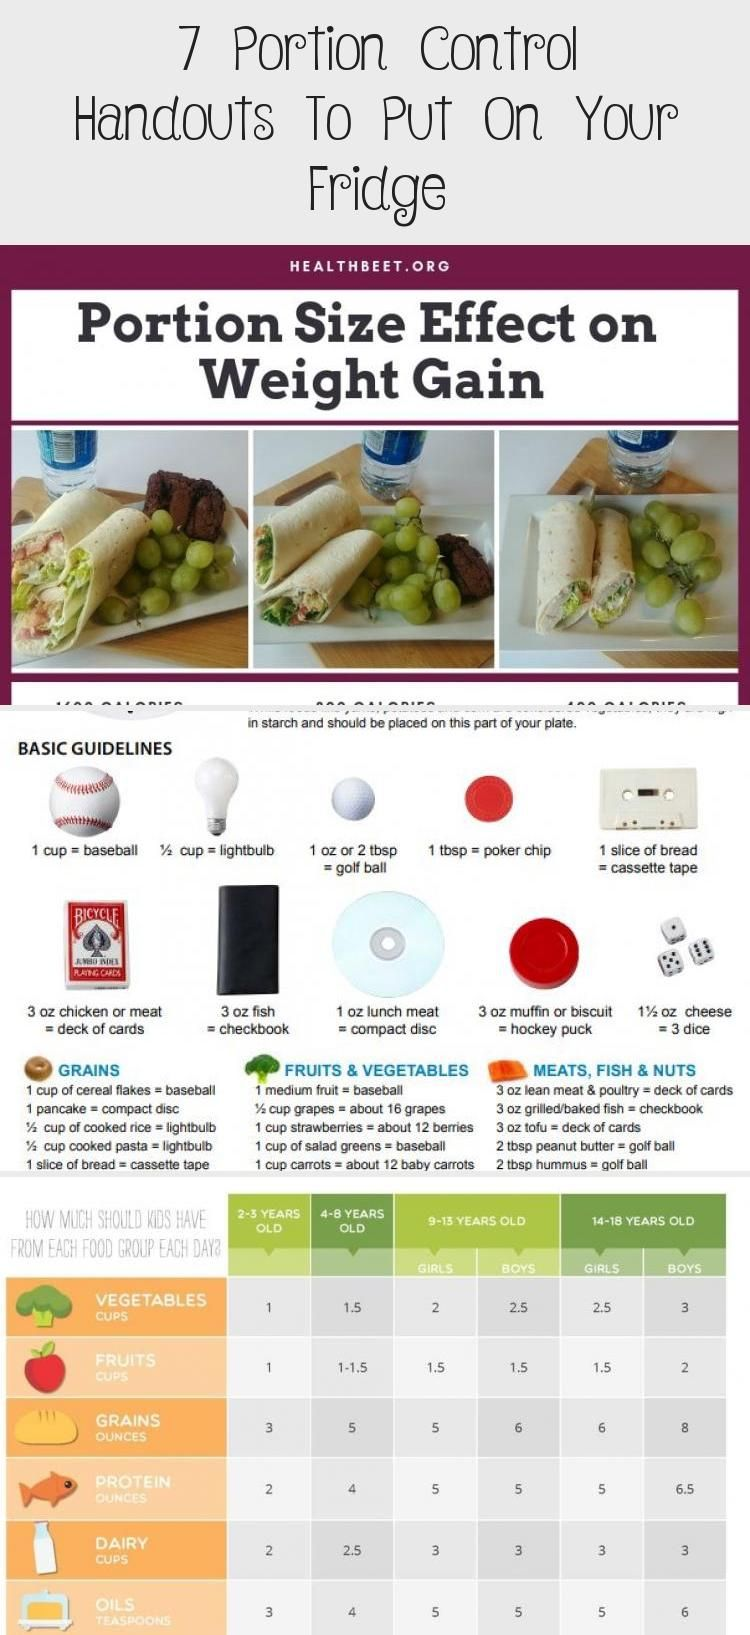 7 Portion Control Handouts to Put on Your Fridge If you